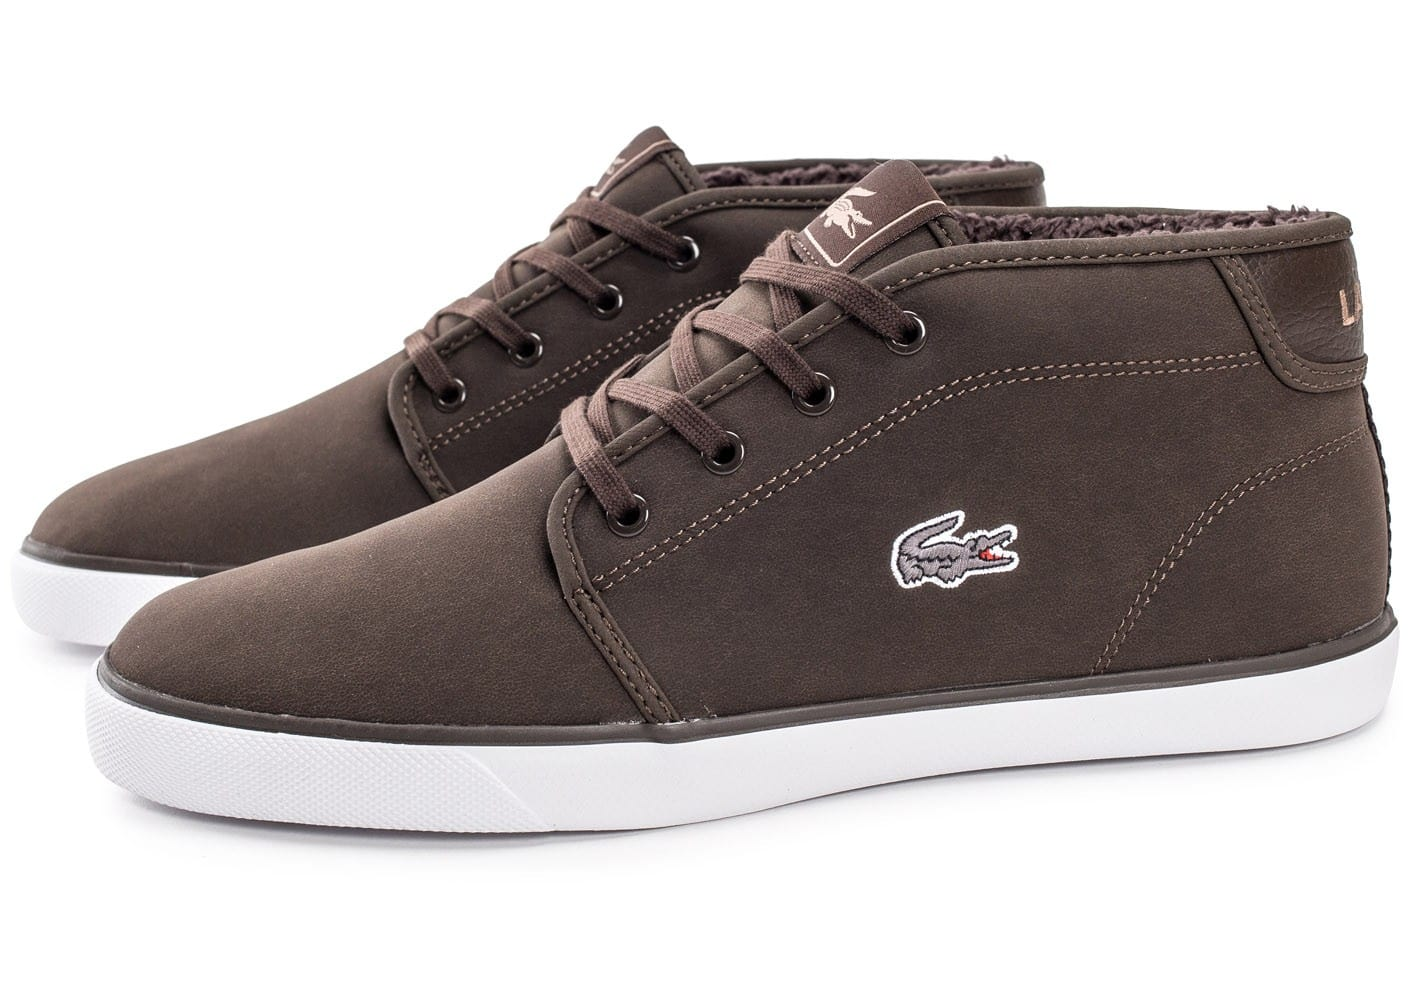 Marron Lacoste Ampthill Baskets Chausport Homme Chaussures Qdcobrwxe xdCrBoeW